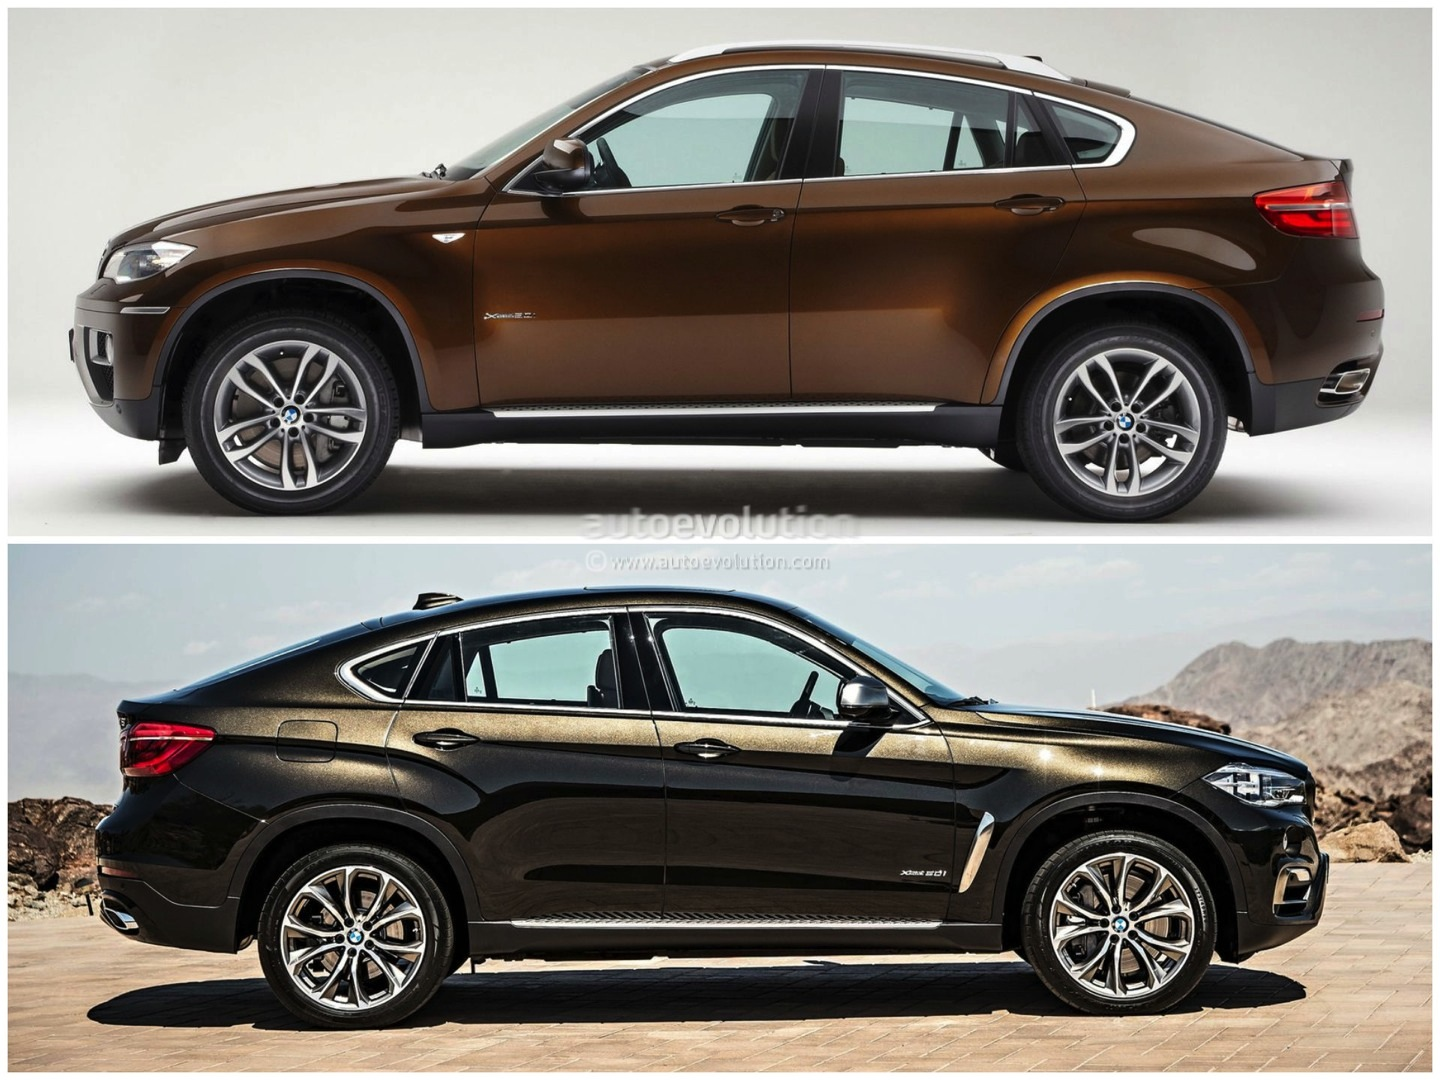 bmw f16 x6 vs bmw e71 x6 photo comparison autoevolution. Black Bedroom Furniture Sets. Home Design Ideas